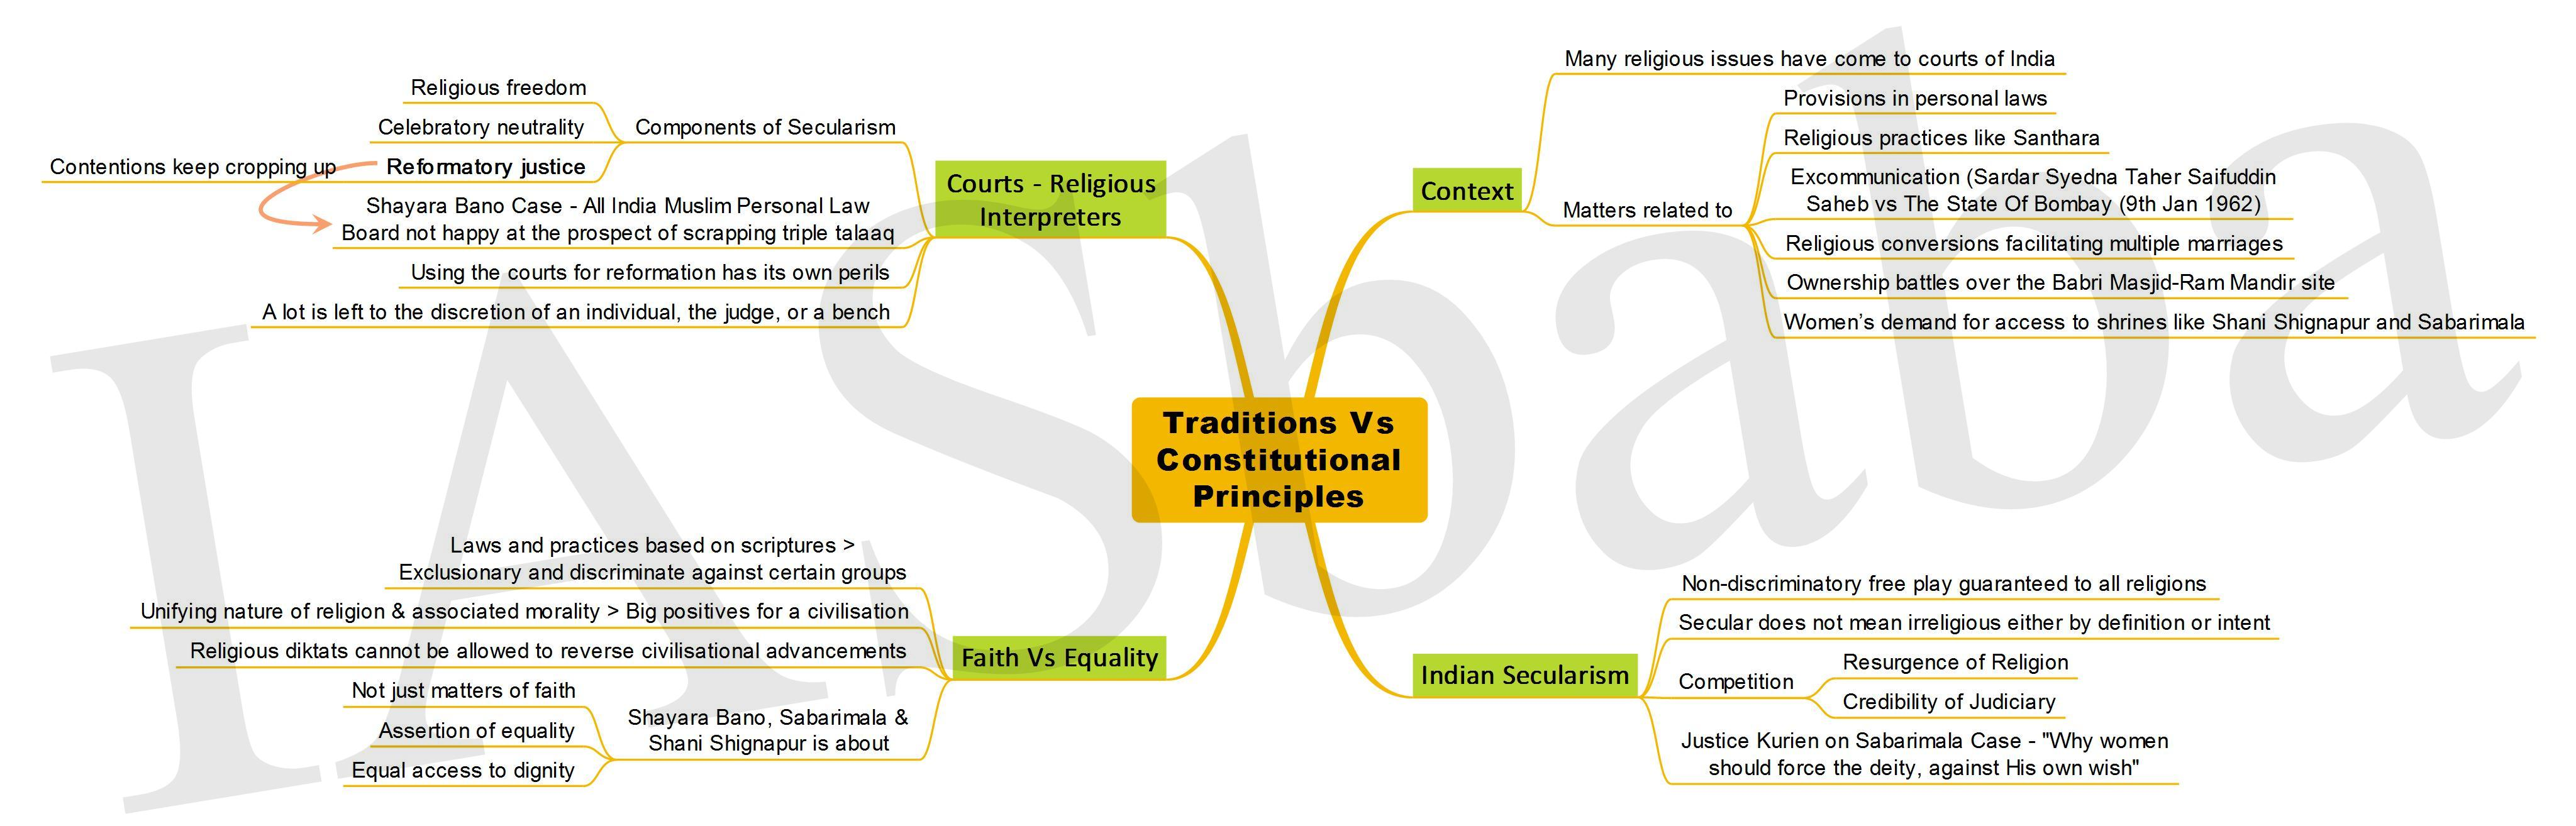 Traditions Vs Constitutional Principles-IASbaba